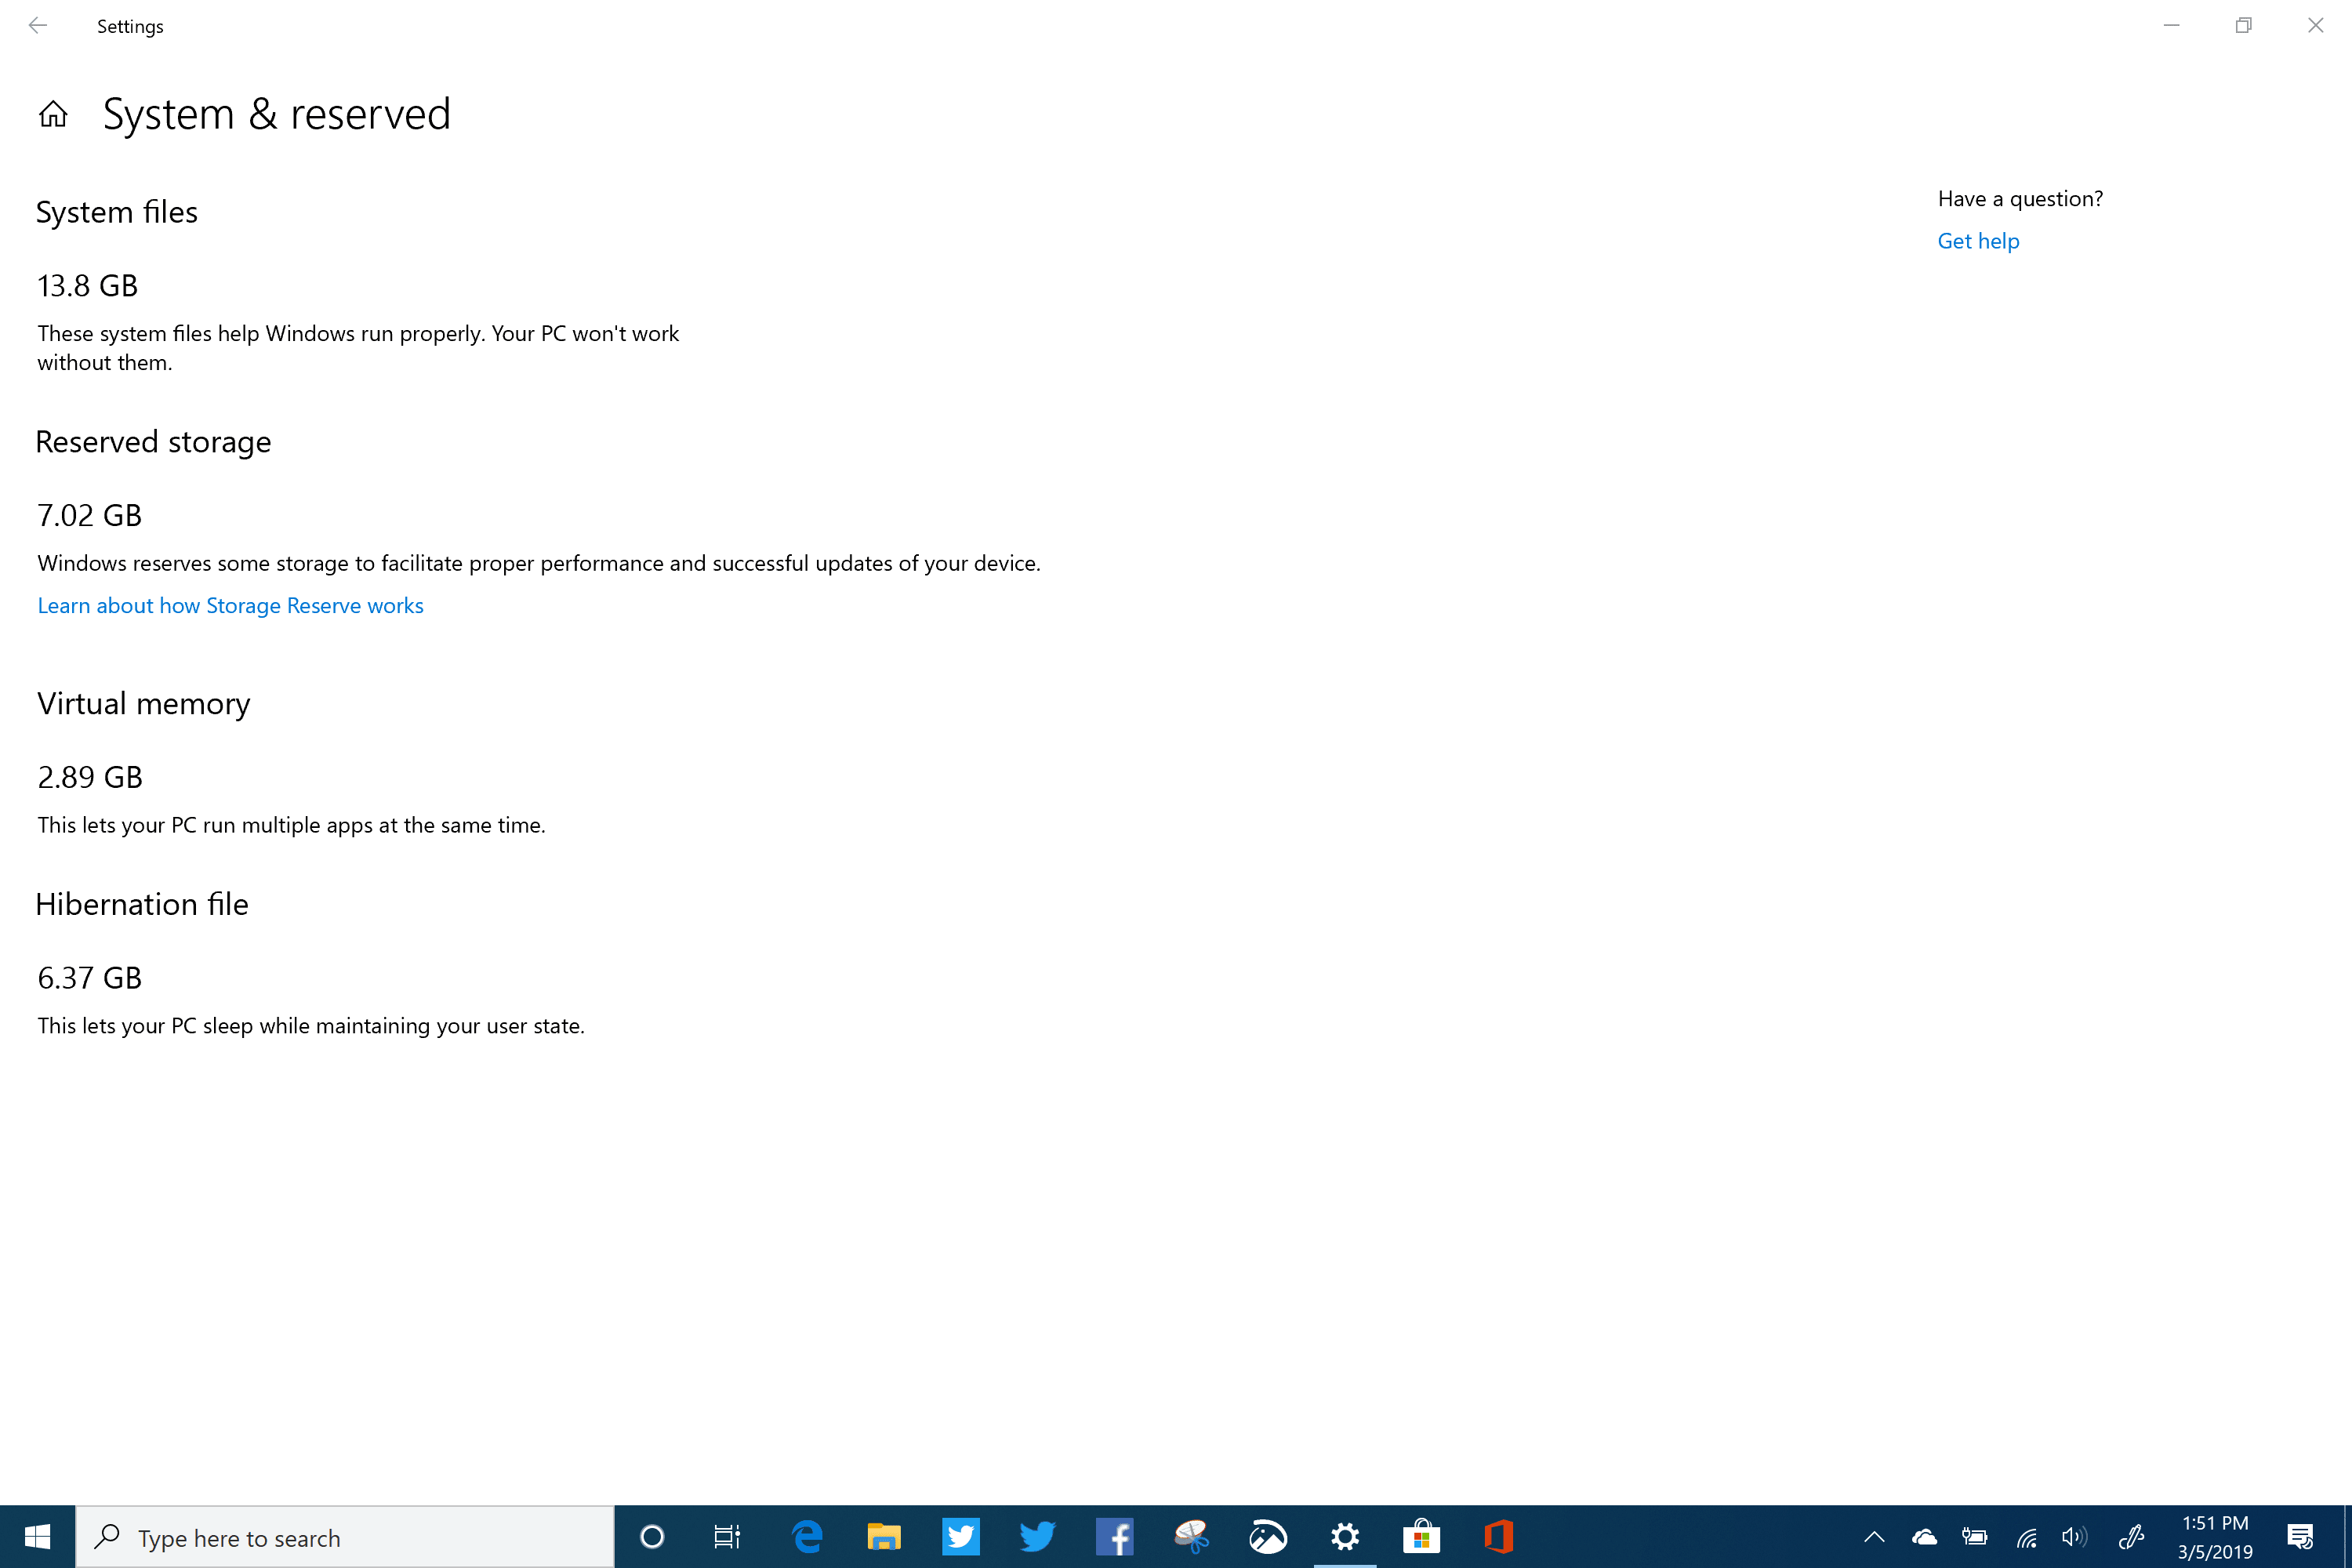 Windows 10 Reserved Storage Build 18351 - Surface Book